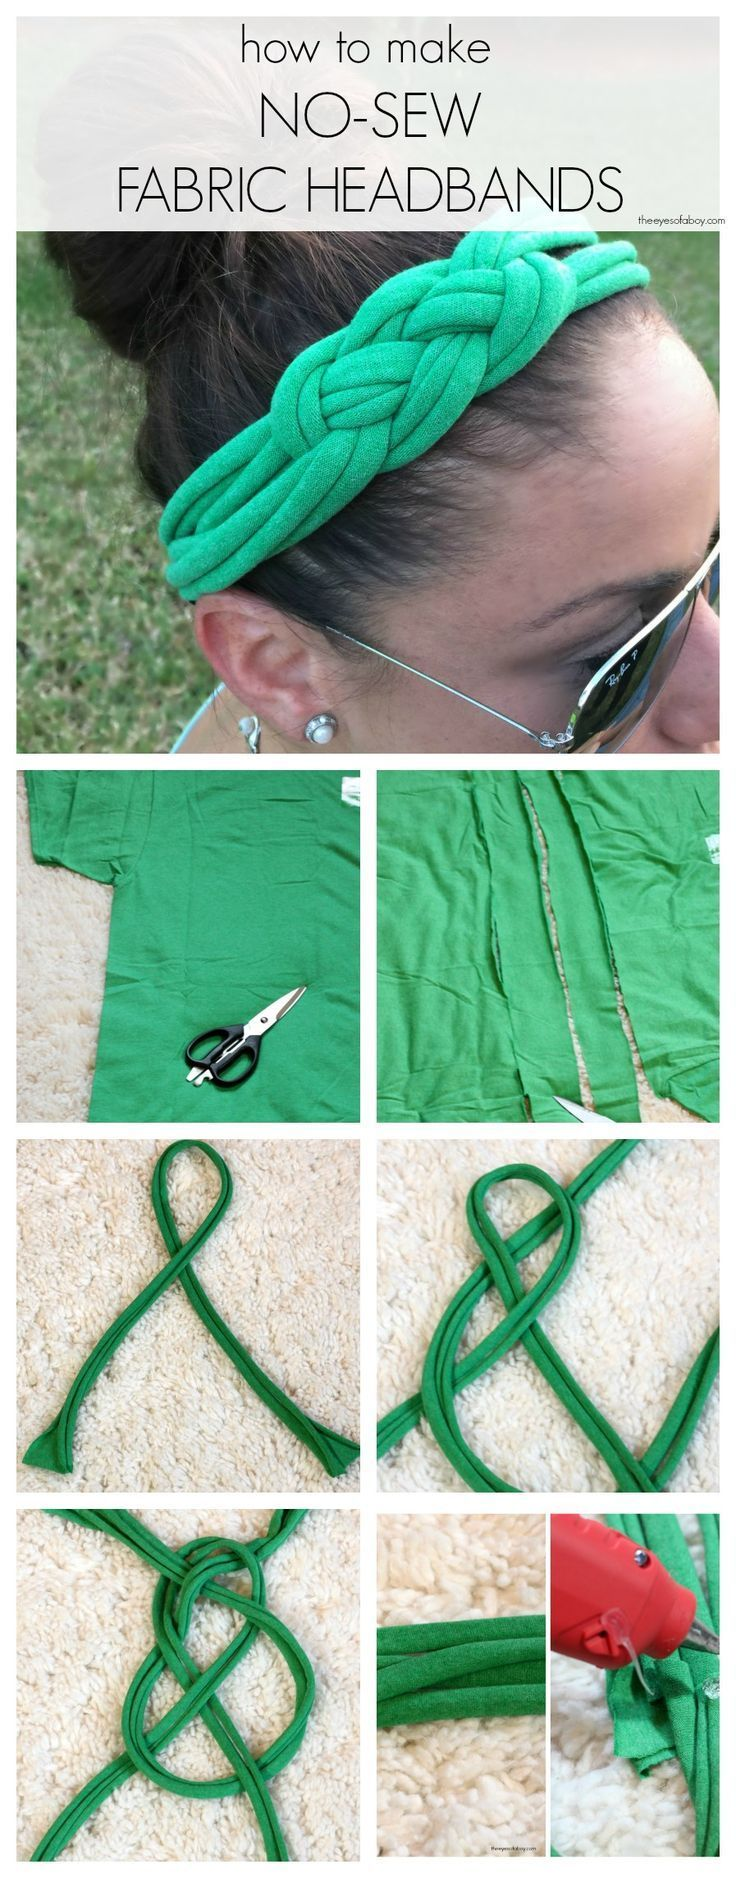 How to Make No Sew Fabric Headbands with Celtic Knot from T Shirts - lady #nosewshirts - watermelon club